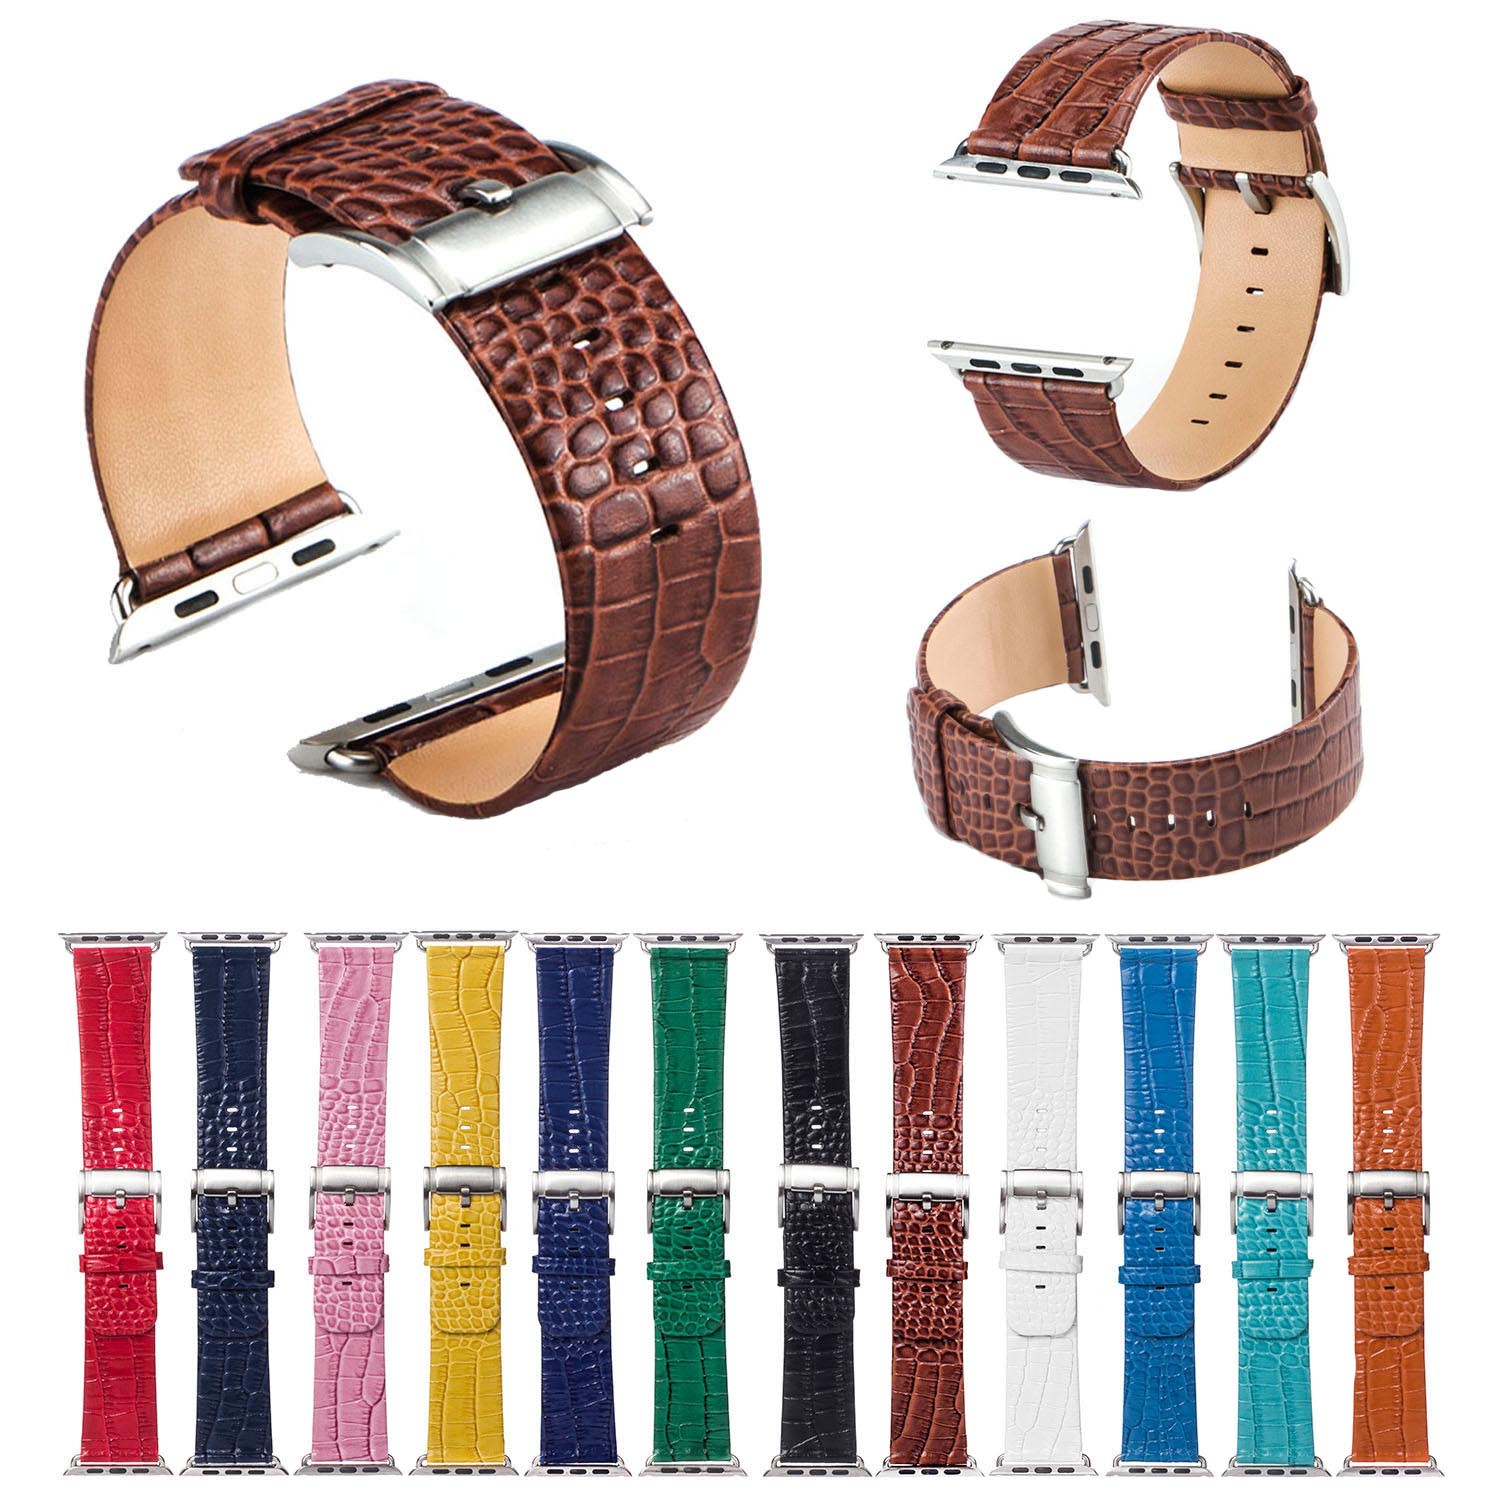 Colorful Crocodile Pattern Band for Apple Watch Series 3 2 1 Genuine Leather Strap Bracelet for iWatch 38mm 42mm Watchbands Belt kakapi crocodile skin genuine leather watchband with connector for apple watch 38mm series 2 series 1 pink